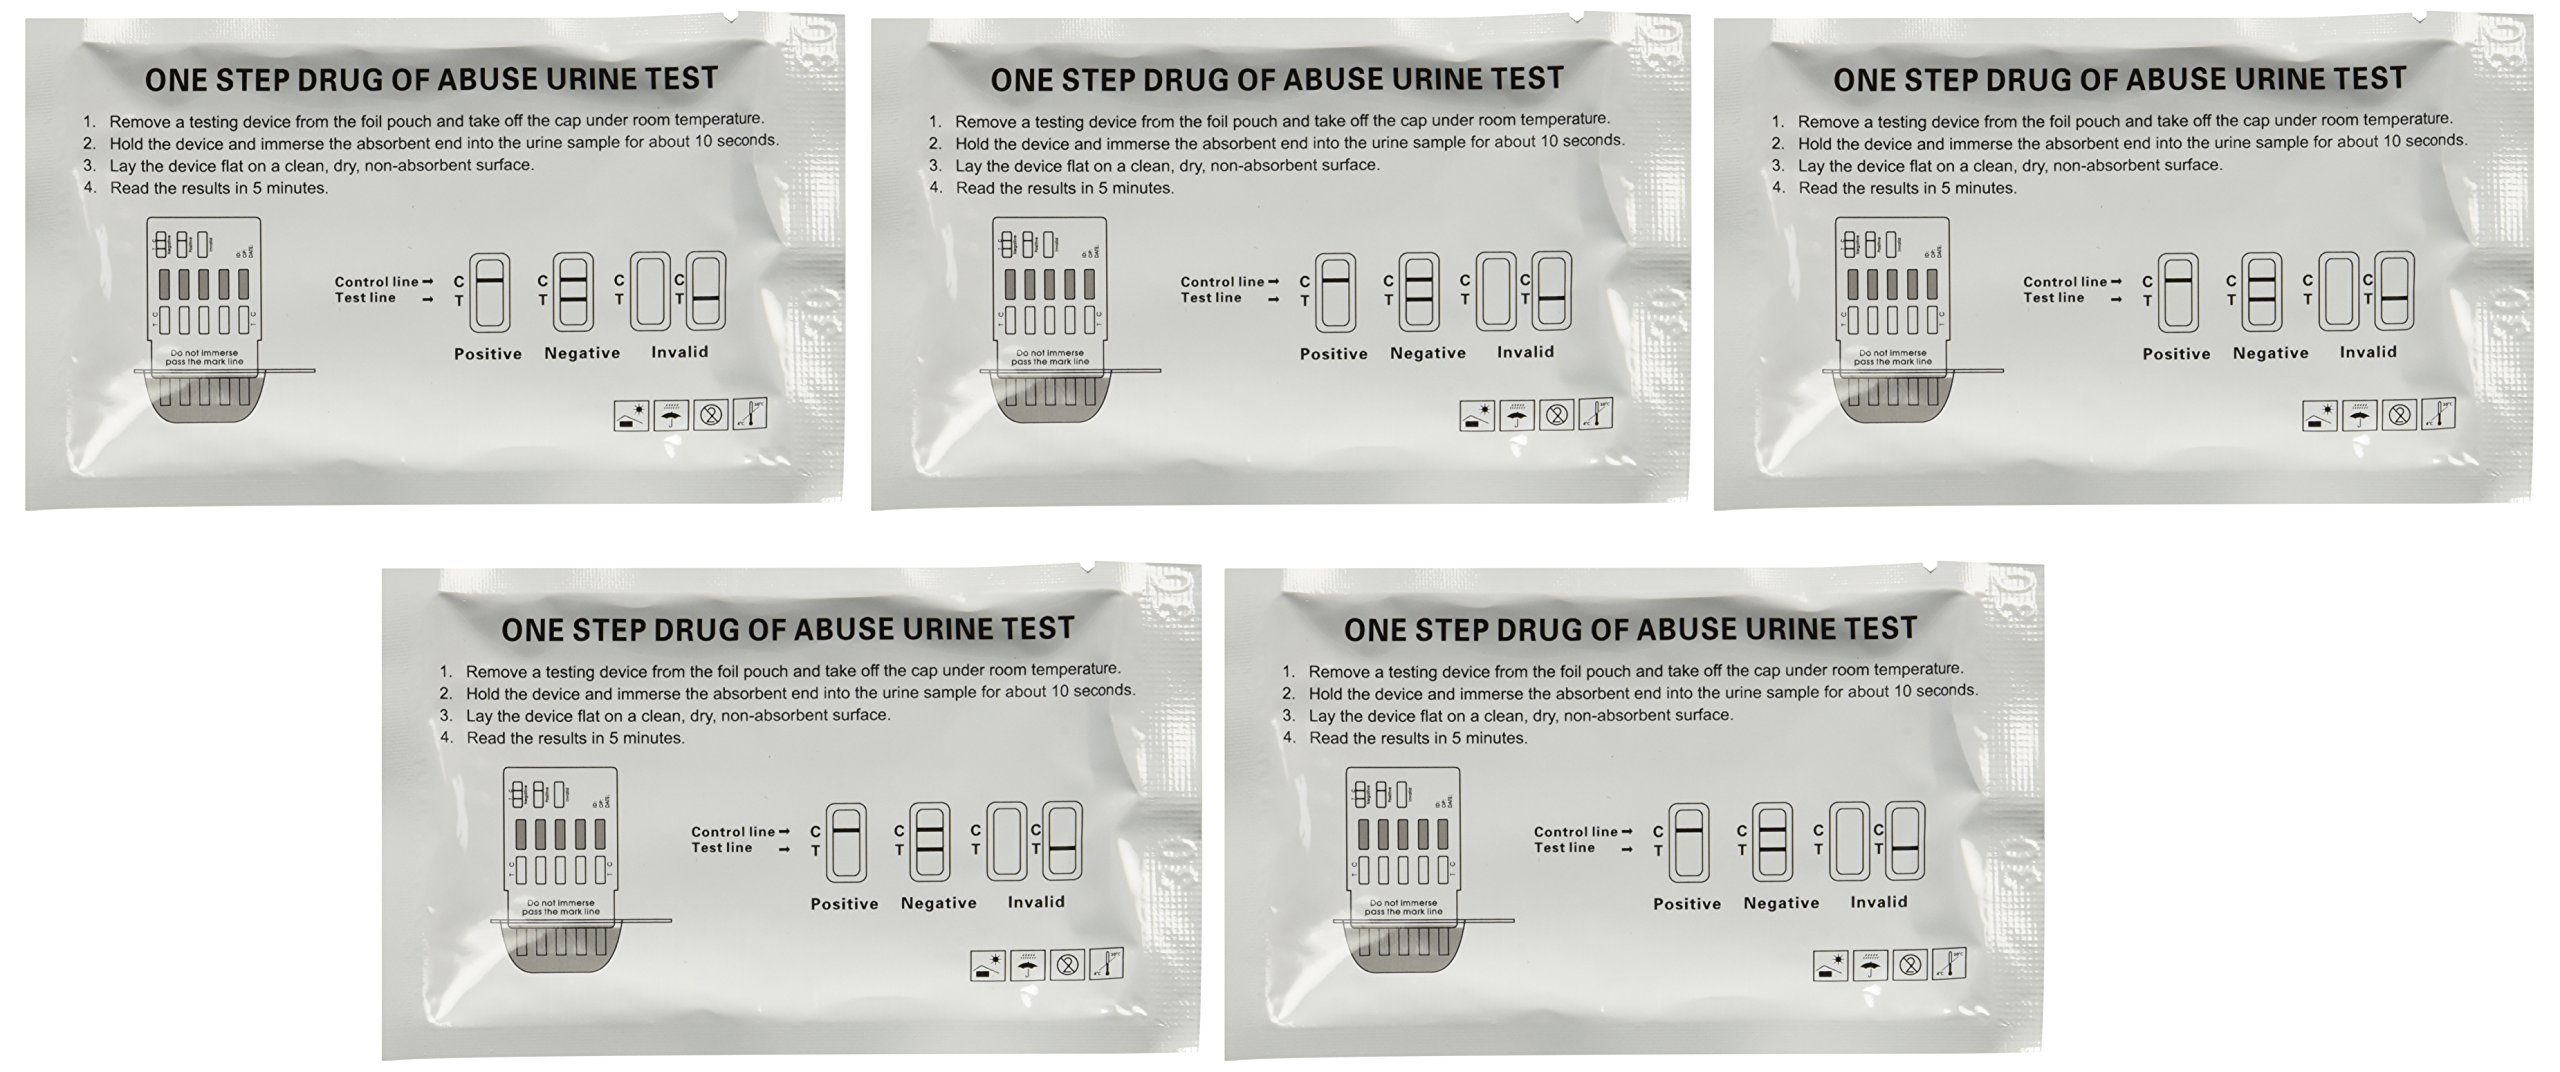 The Home Drug Test - 5 Individually Wrapped 6 Panel Multi Screen Urine Drug Tests - Each Test Screens For 6 Different Drug Types Including Cocaine / Crack, Heroin / Morphine, Marijuana, Meth, Amphetamine, Adderall, Benzos, Xanax